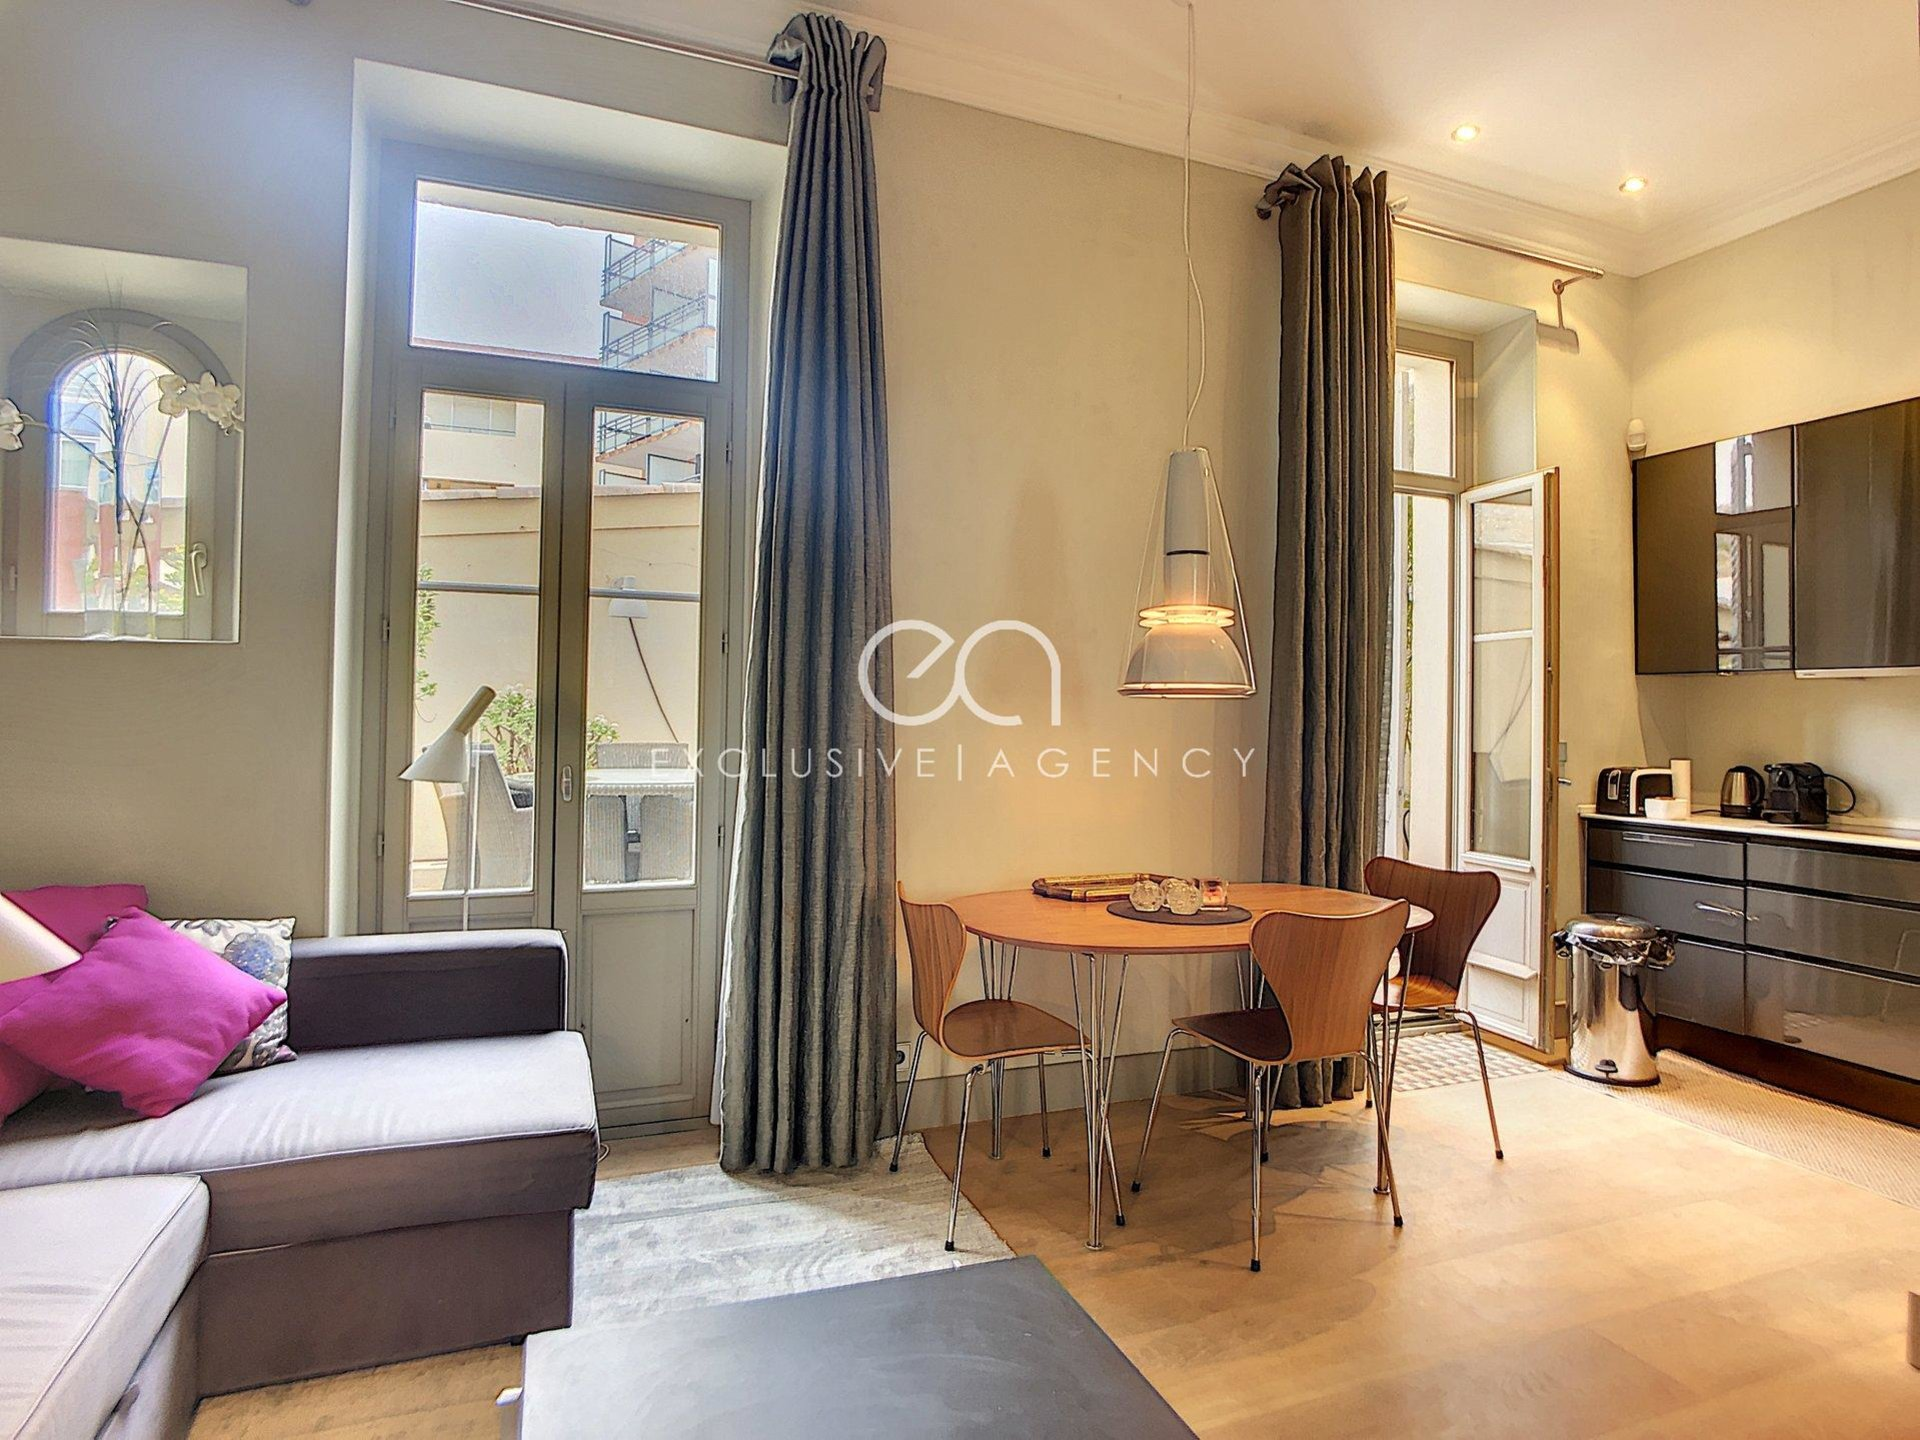 Congress or holiday rentals in Cannes Center rue d'Antibes 45m² 1 bedroom apartment with 18m² terrace.